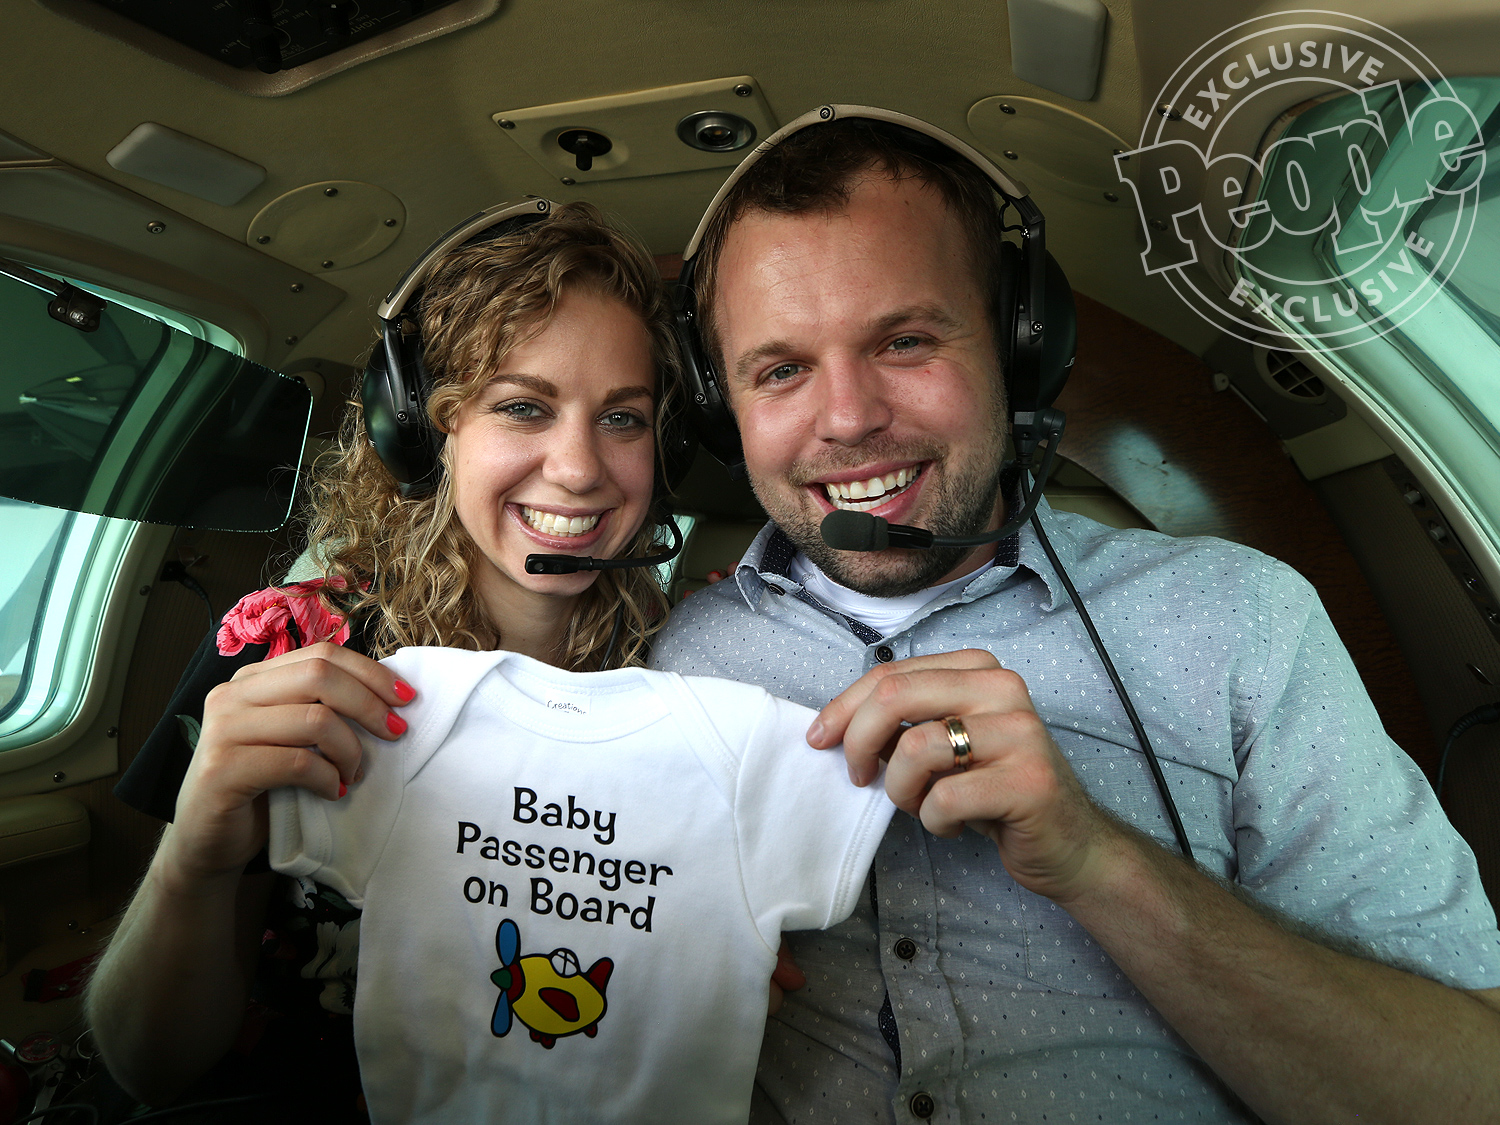 John David Duggar and Wife Abbie Burnett Expecting Their First Child: 'We Are on Cloud 9'